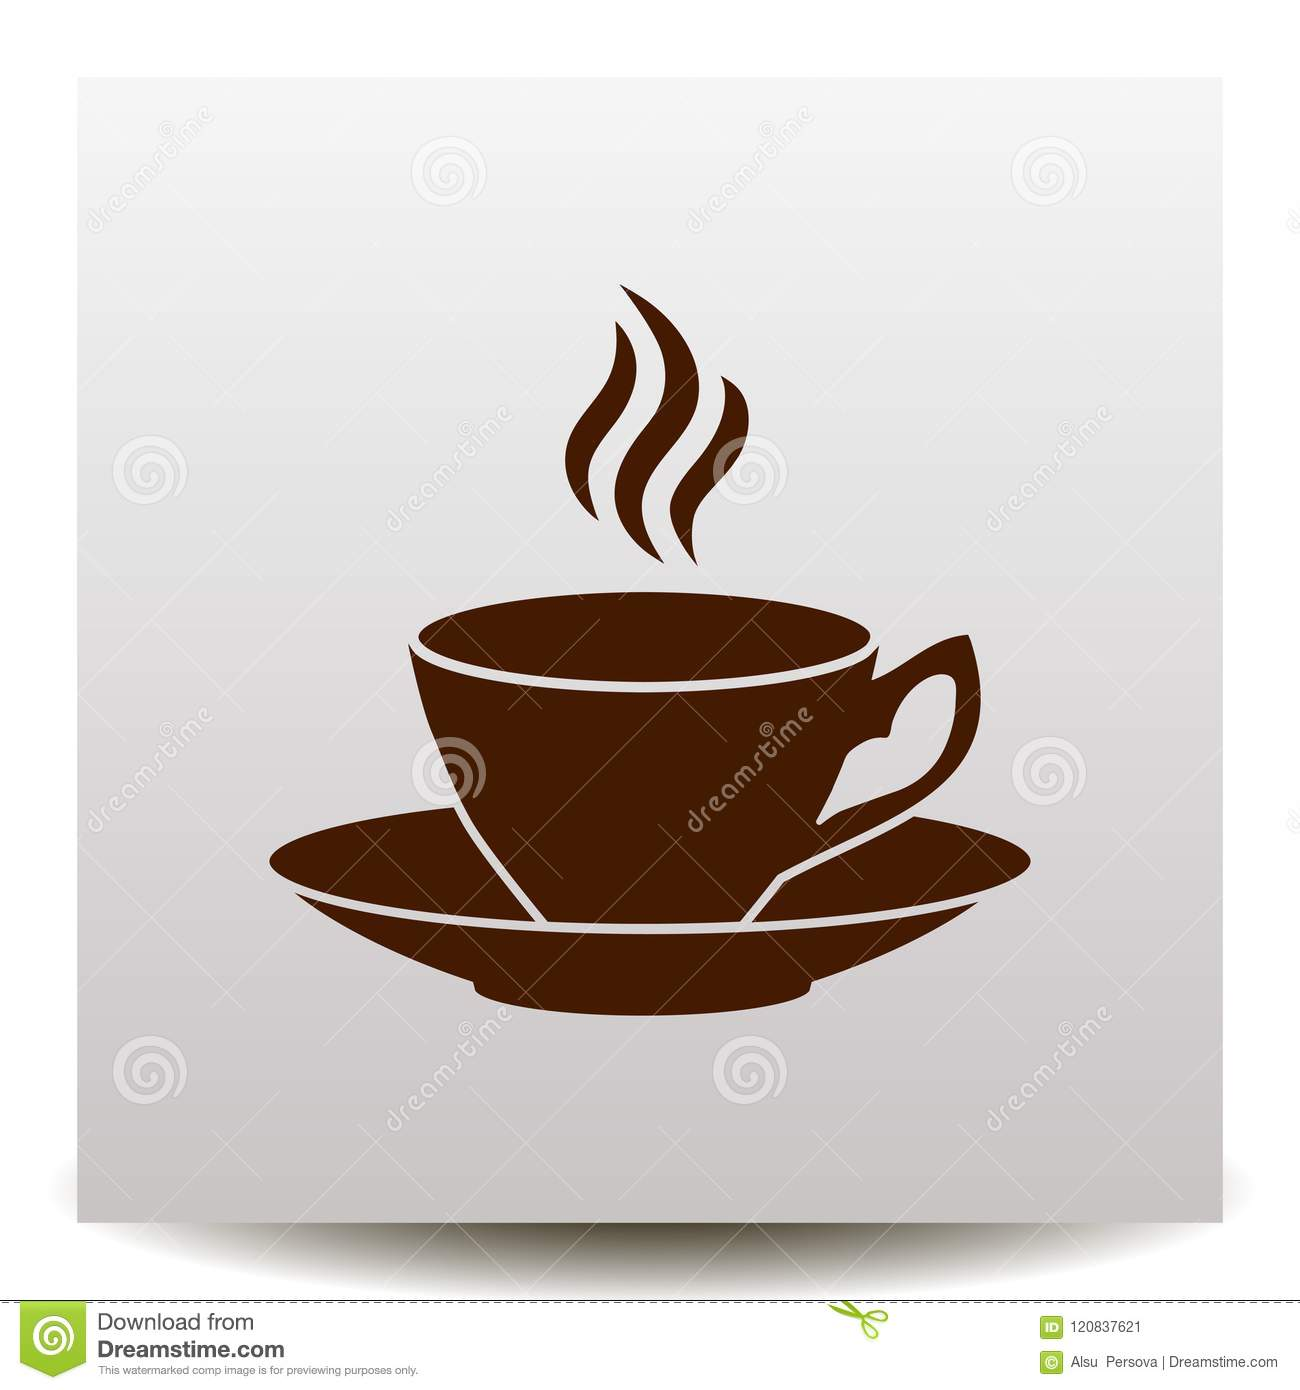 Coffee Cup With Saucer And Flavor Vector Icon Stock Vector Illustration Of Disposable Background 120837621